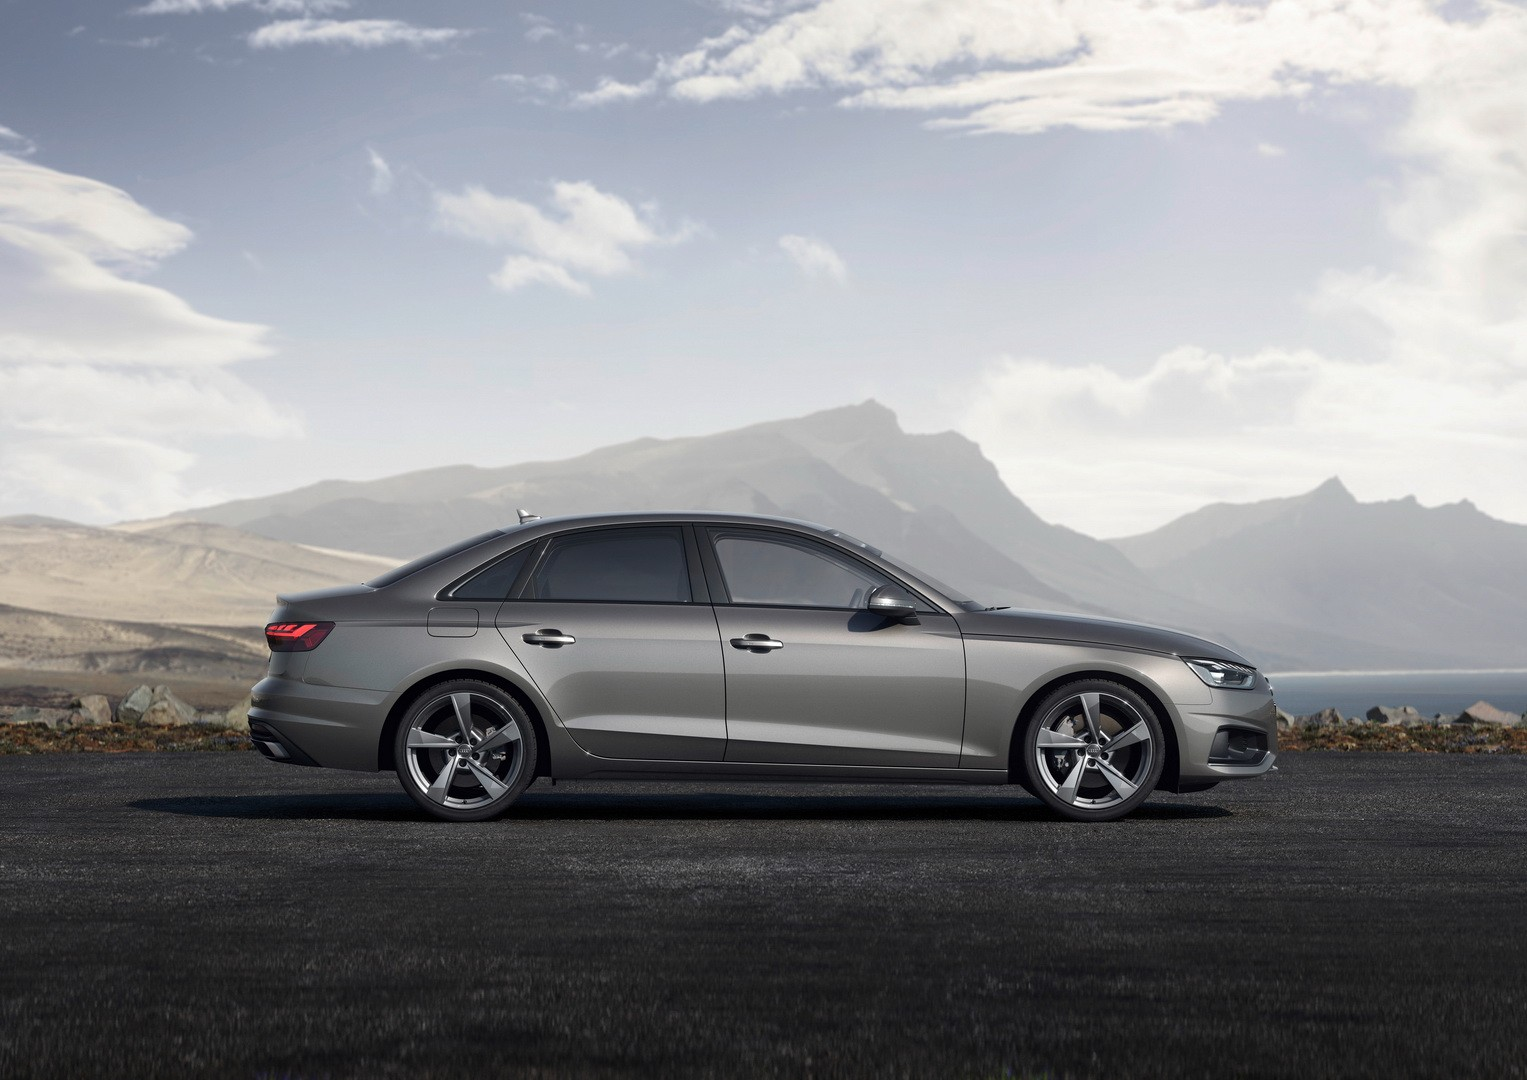 all-new-2023-audi-a4-wont-go-full-ev-just-yet-will-stick-with-gasoline-and-diesel-power_7.jpg